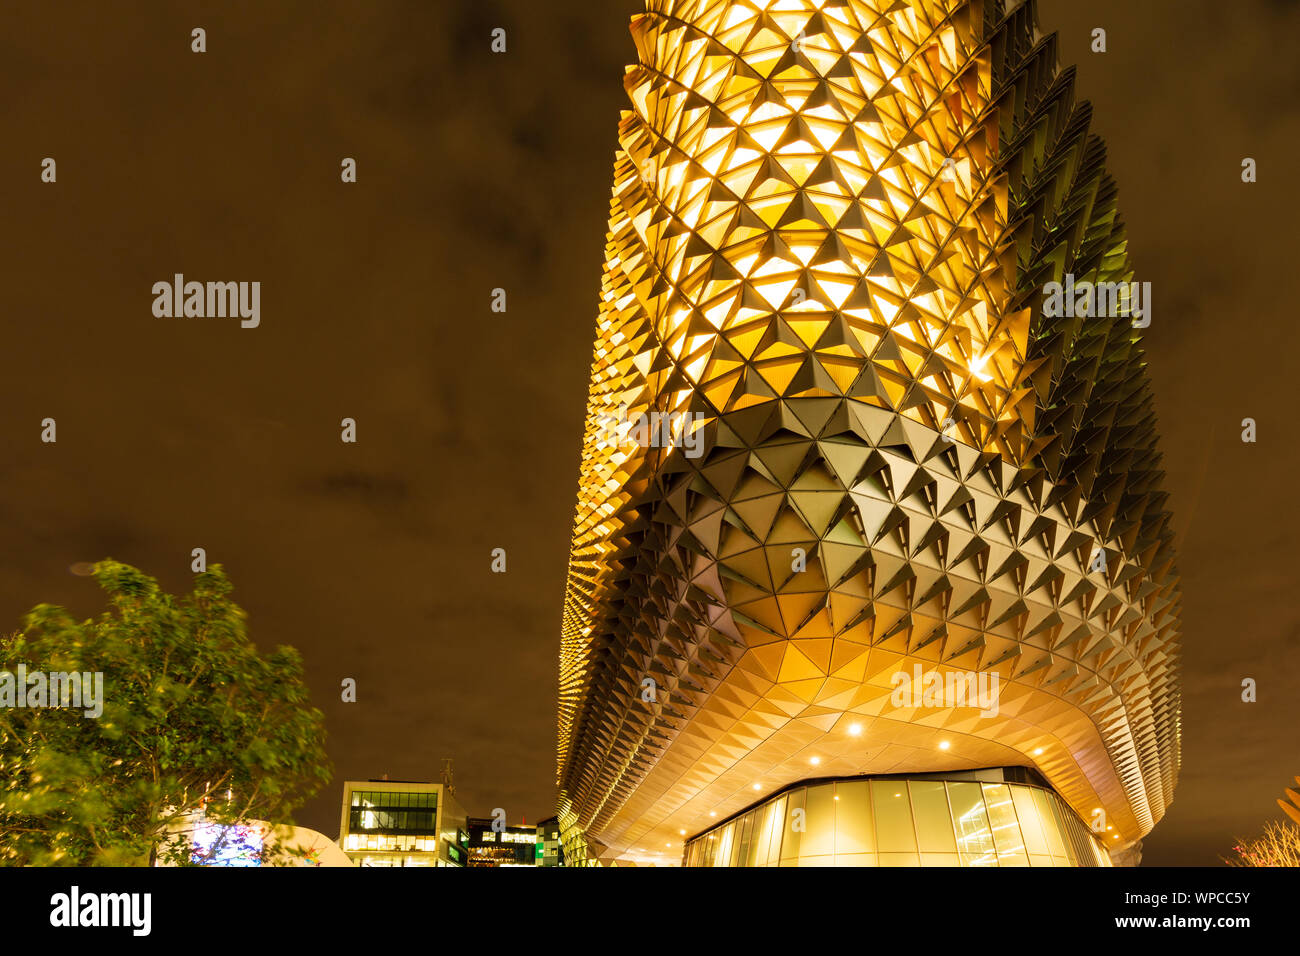 A Modern Building at Night. The South Australian Health and Medical Research Institute Building in Adelaide Australia. Stock Photo